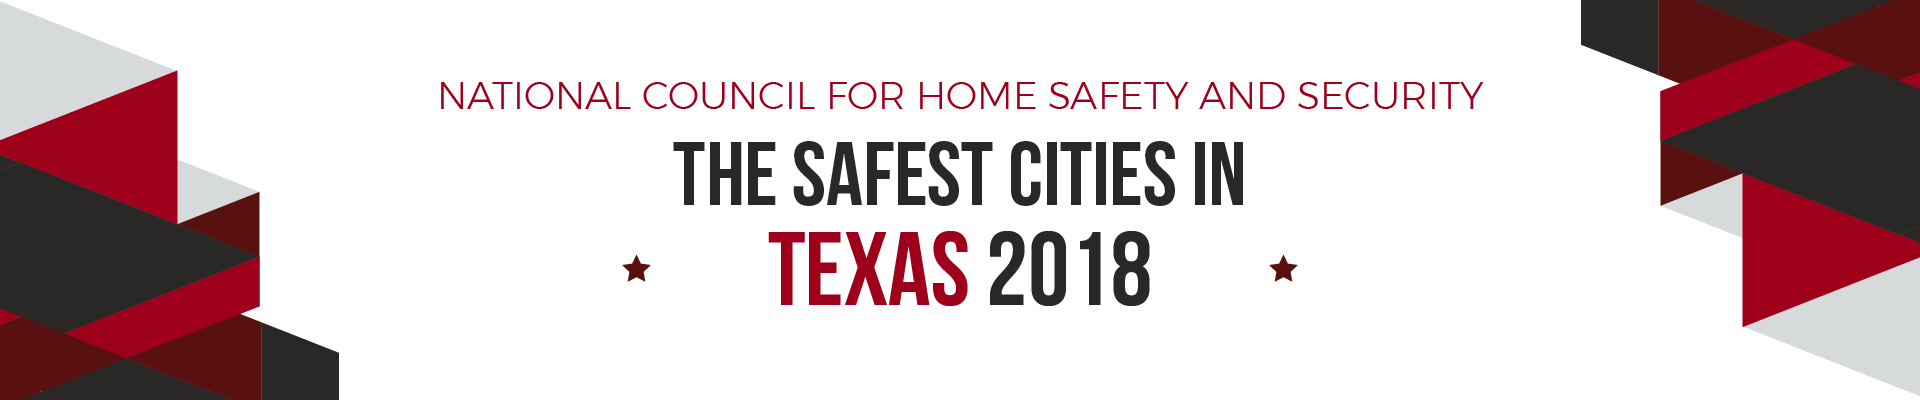 texas safe cities 2018